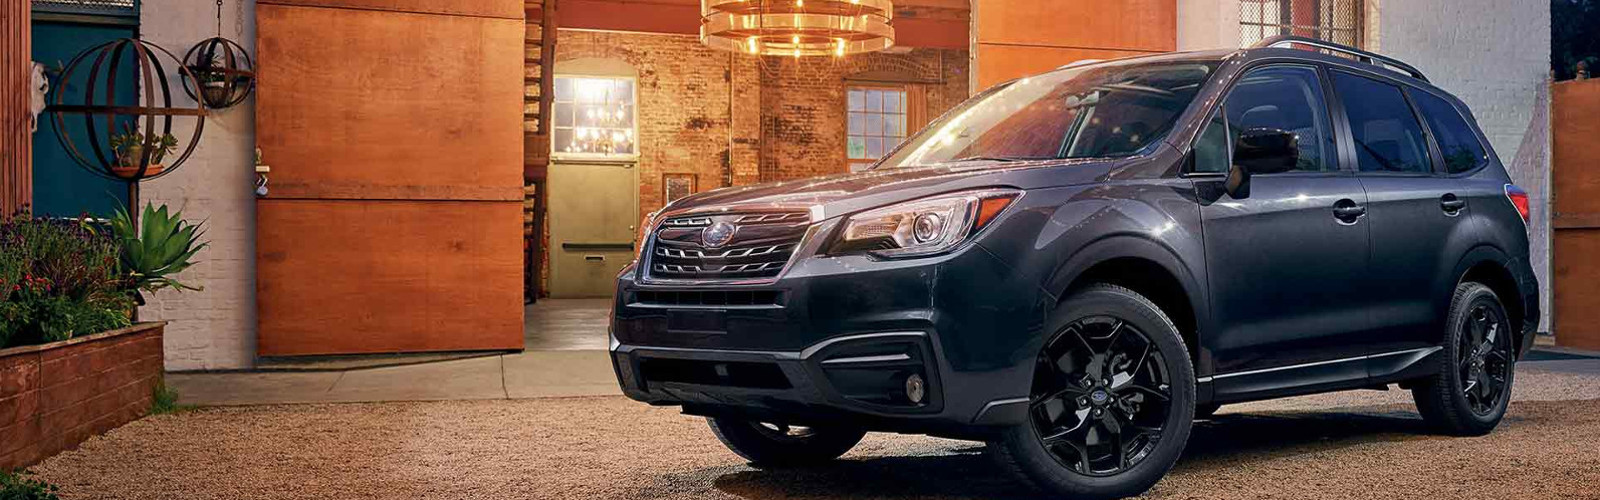 Lateral Subaru Forester